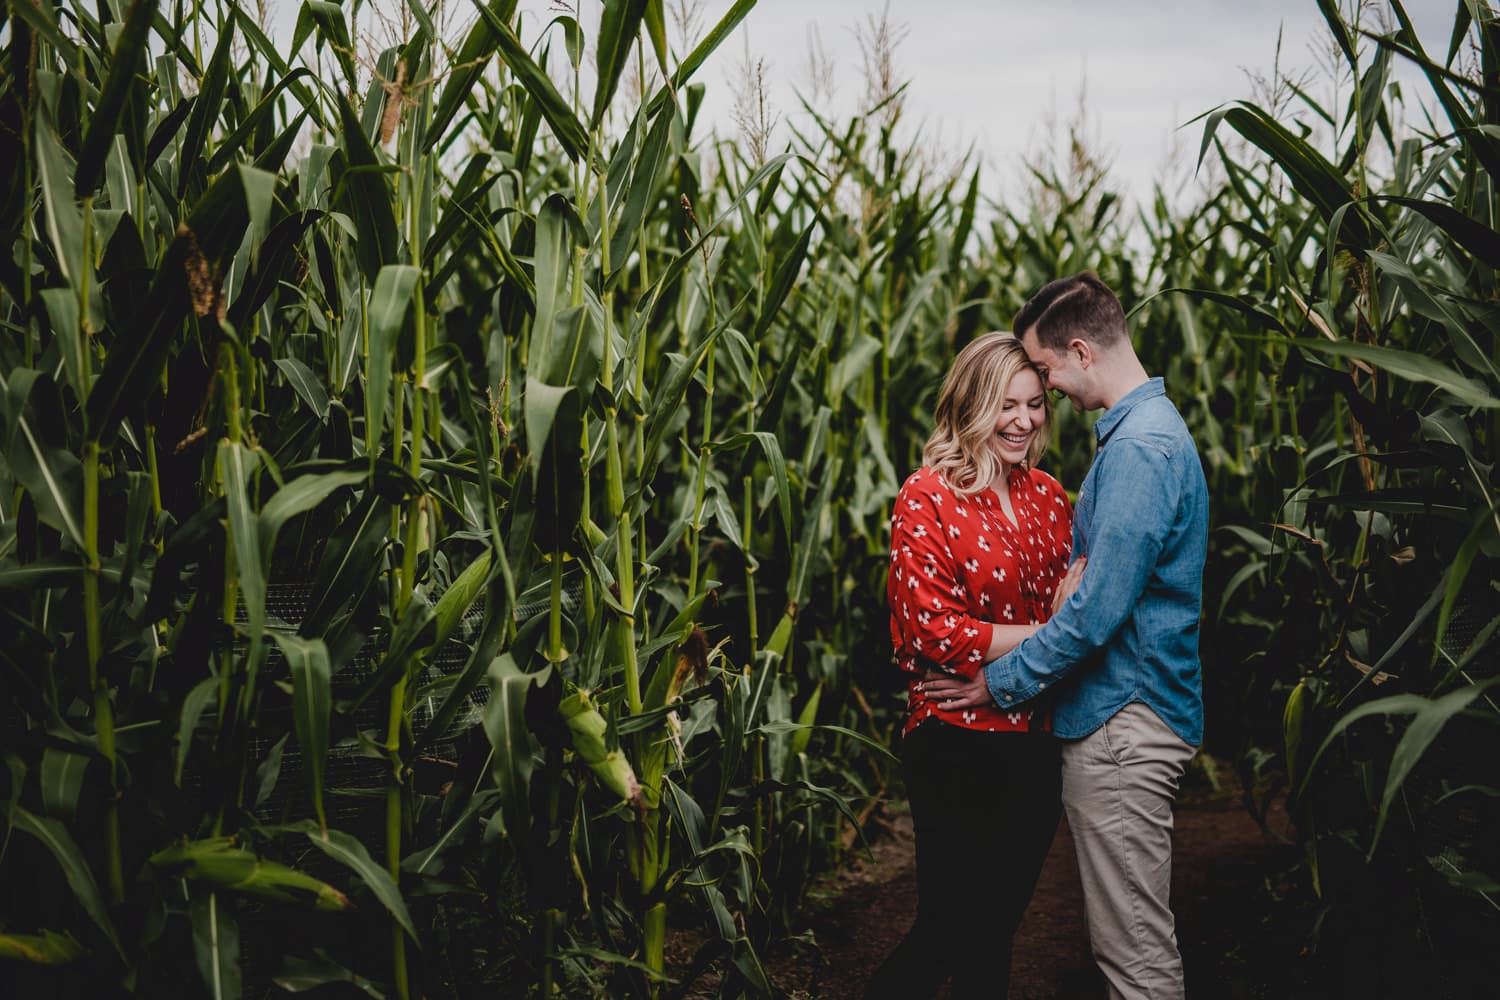 An engagement session in a Cornfield on Sauvie Island, Portland, Oregon.